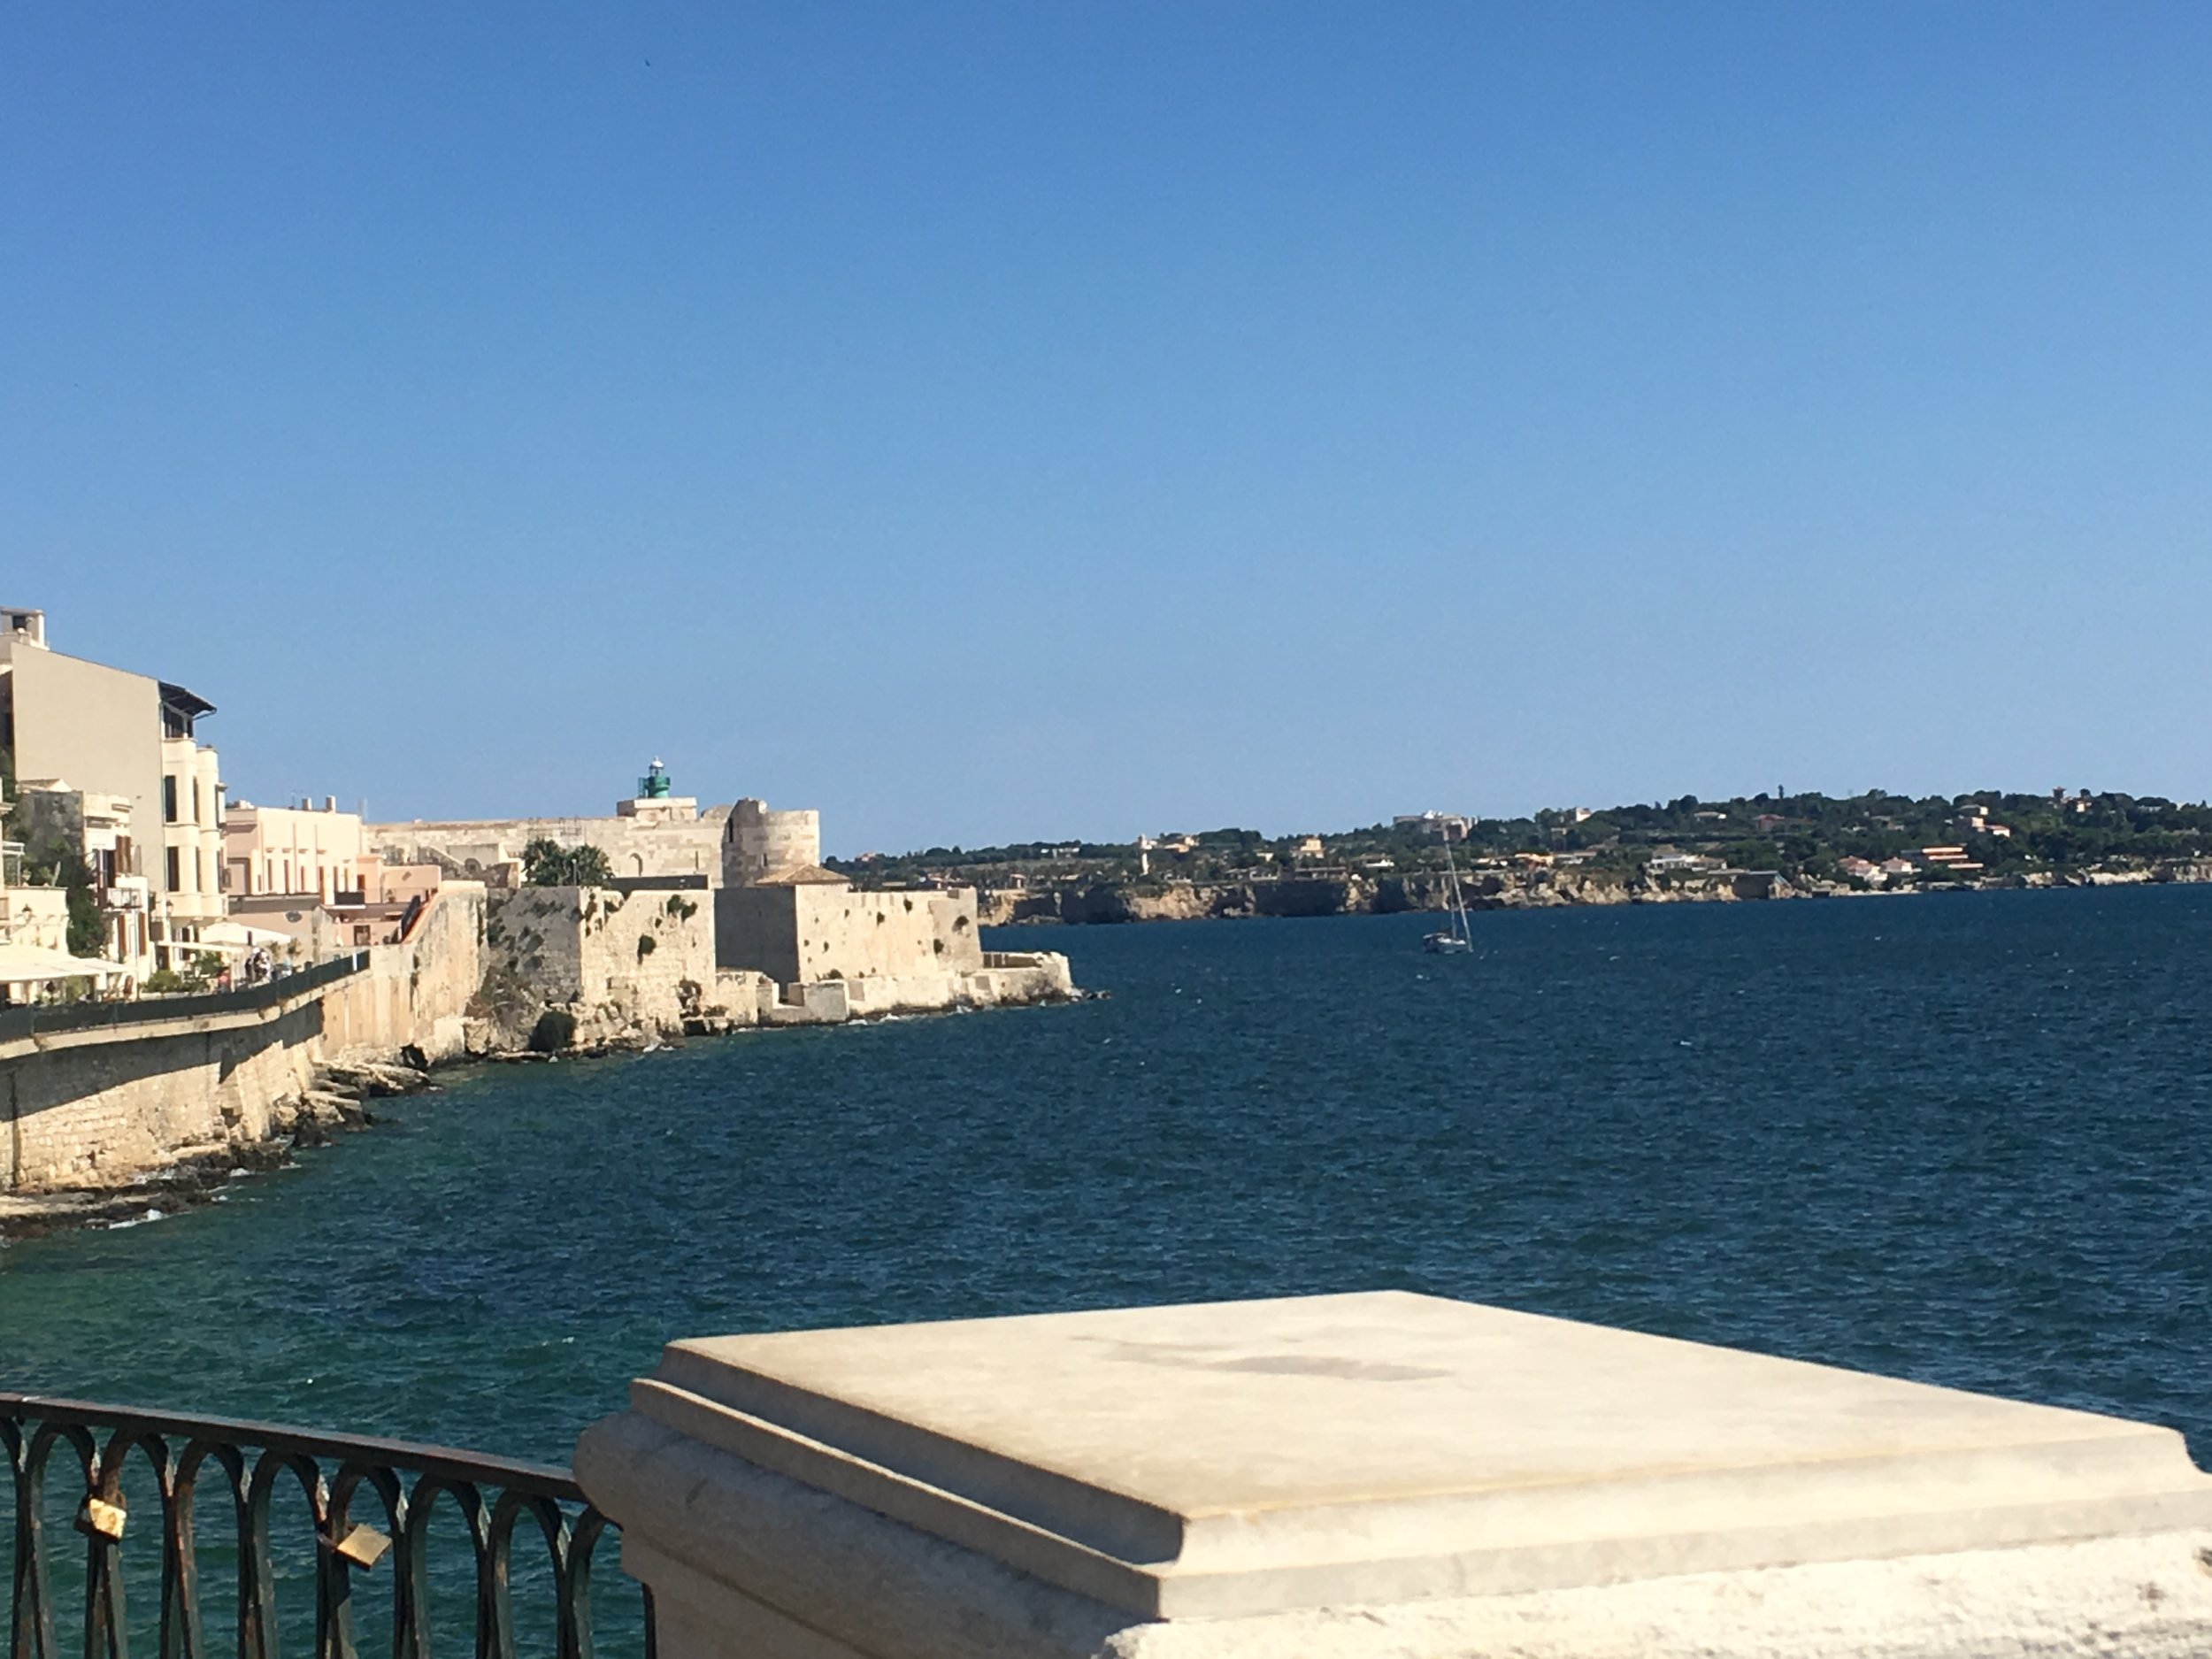 Archimedes held off... - the Romans in this harbor of Syracuse.